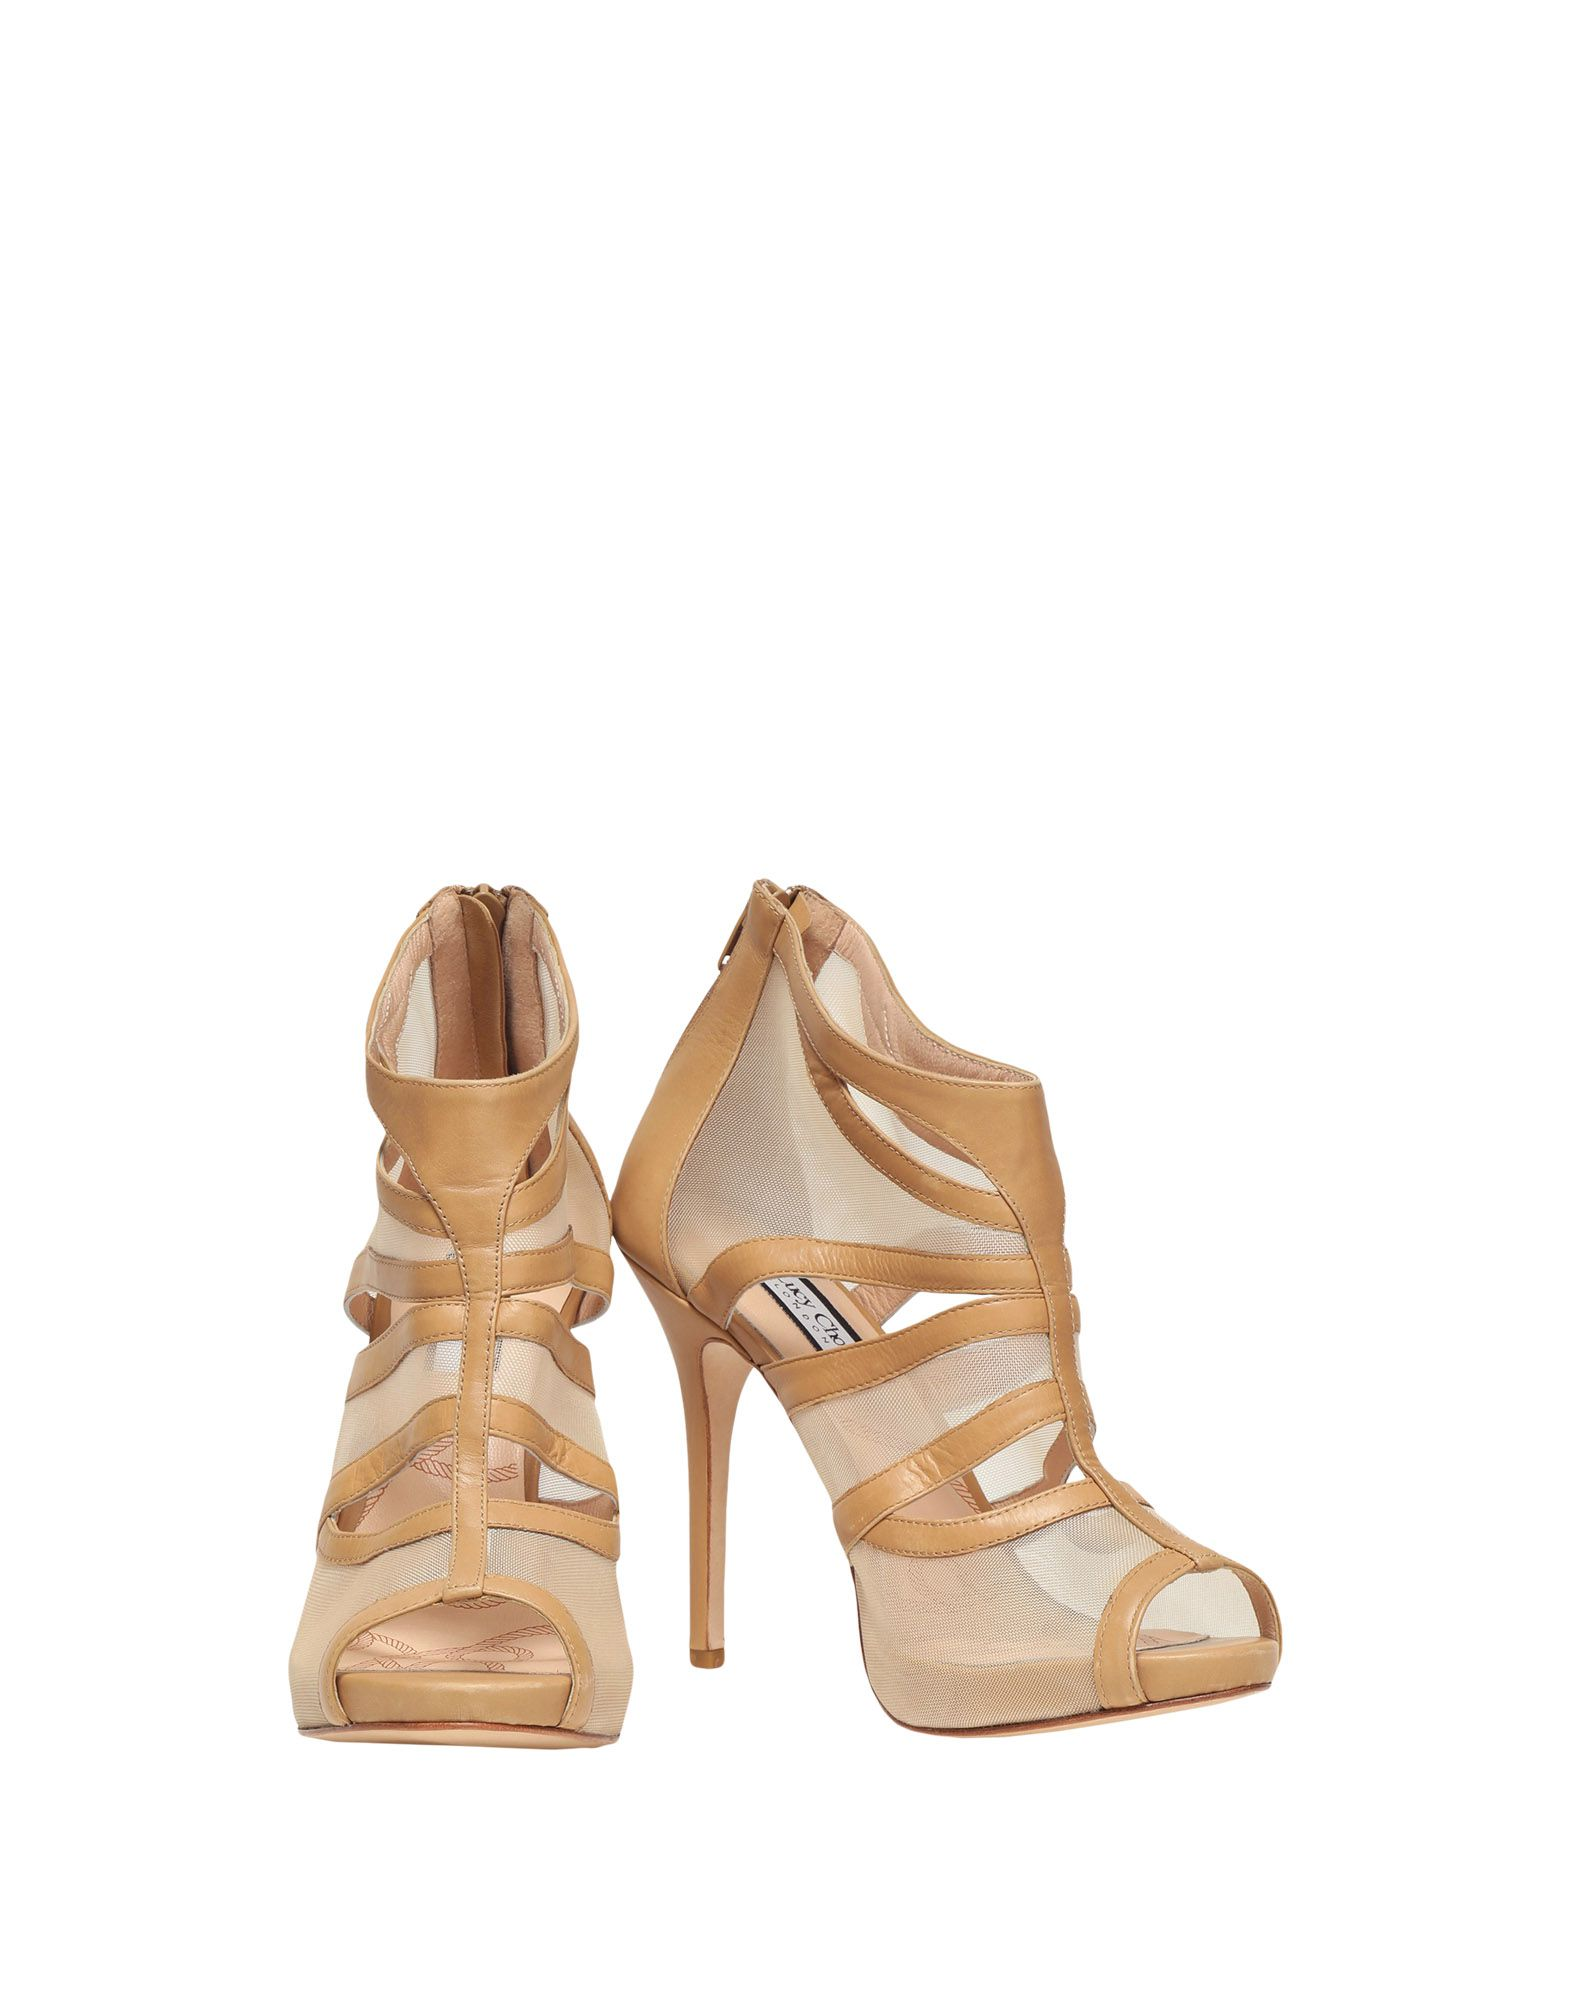 LUCY CHOI LONDON Ankle Boot in Camel